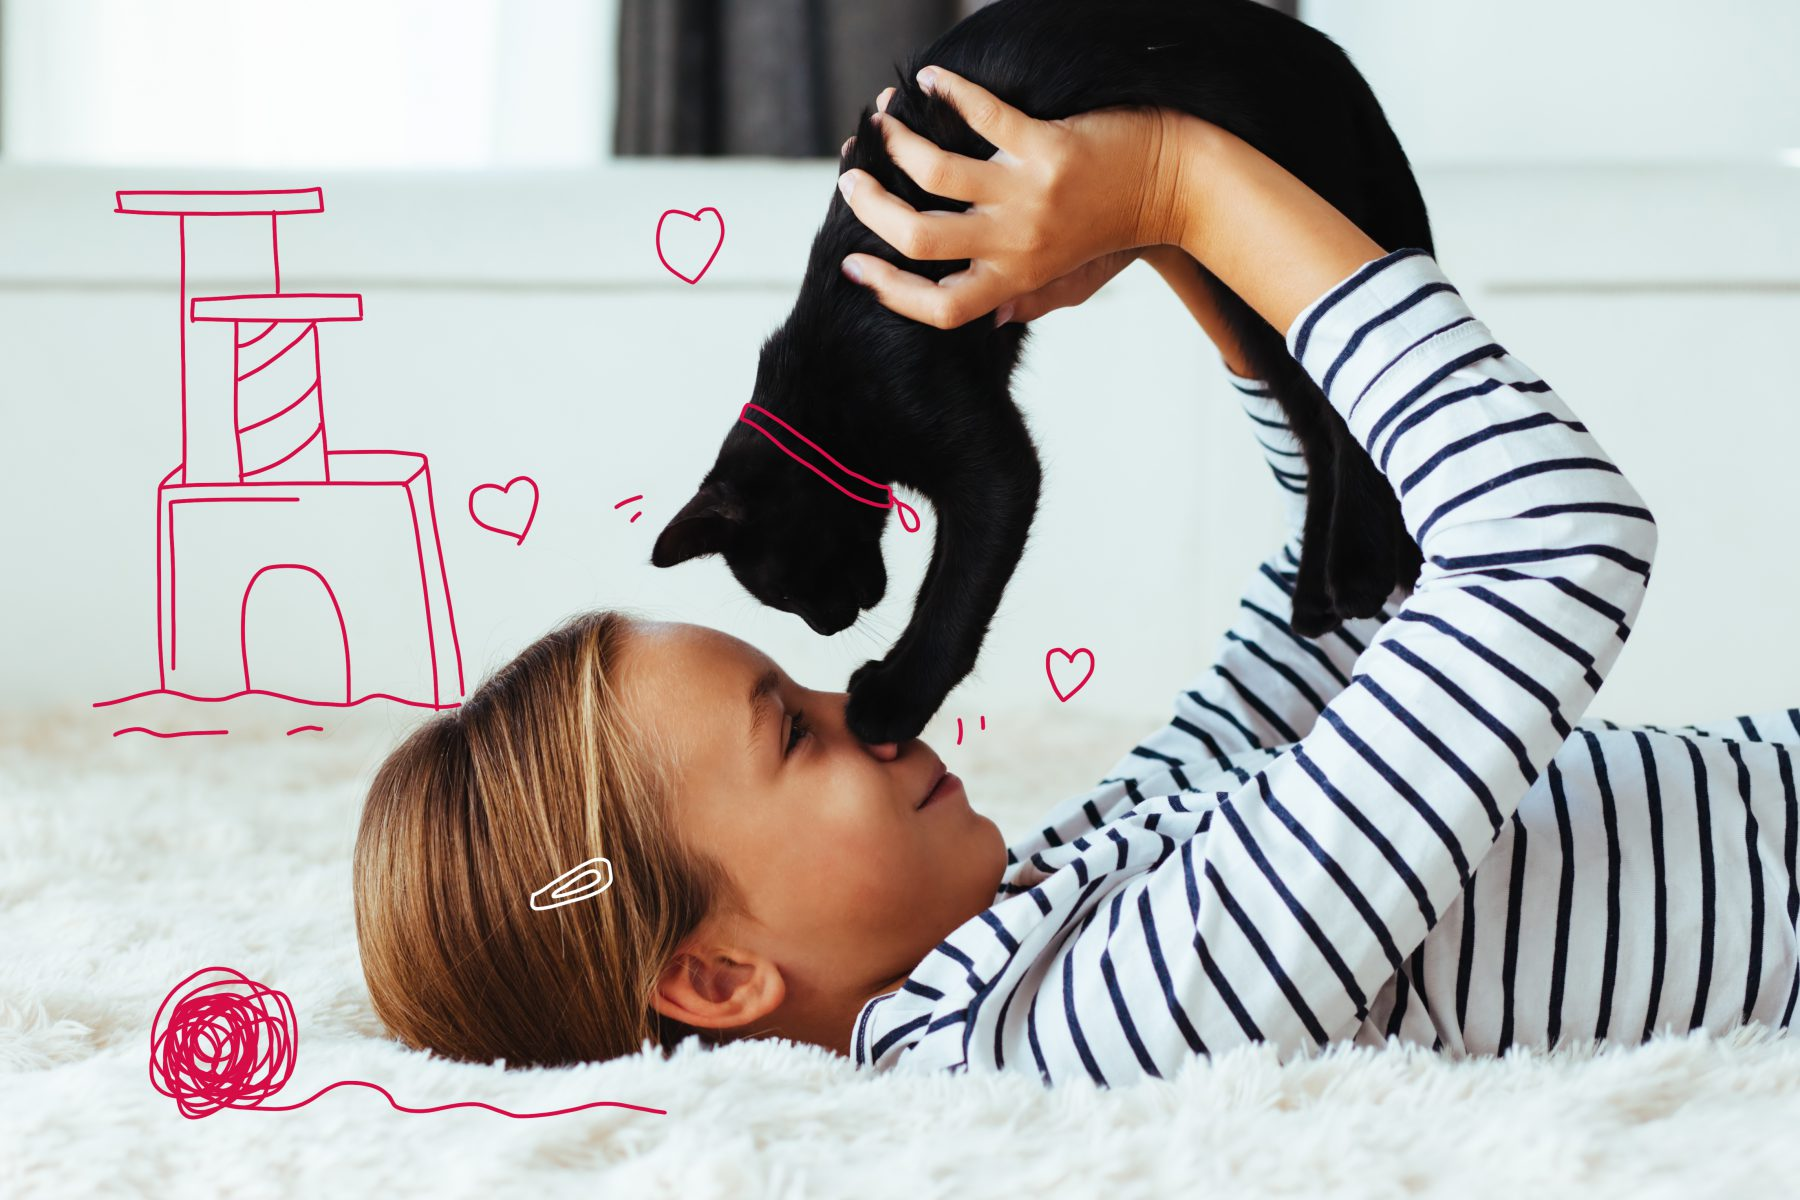 The strange behaviours of cats. A girl holds a black cat